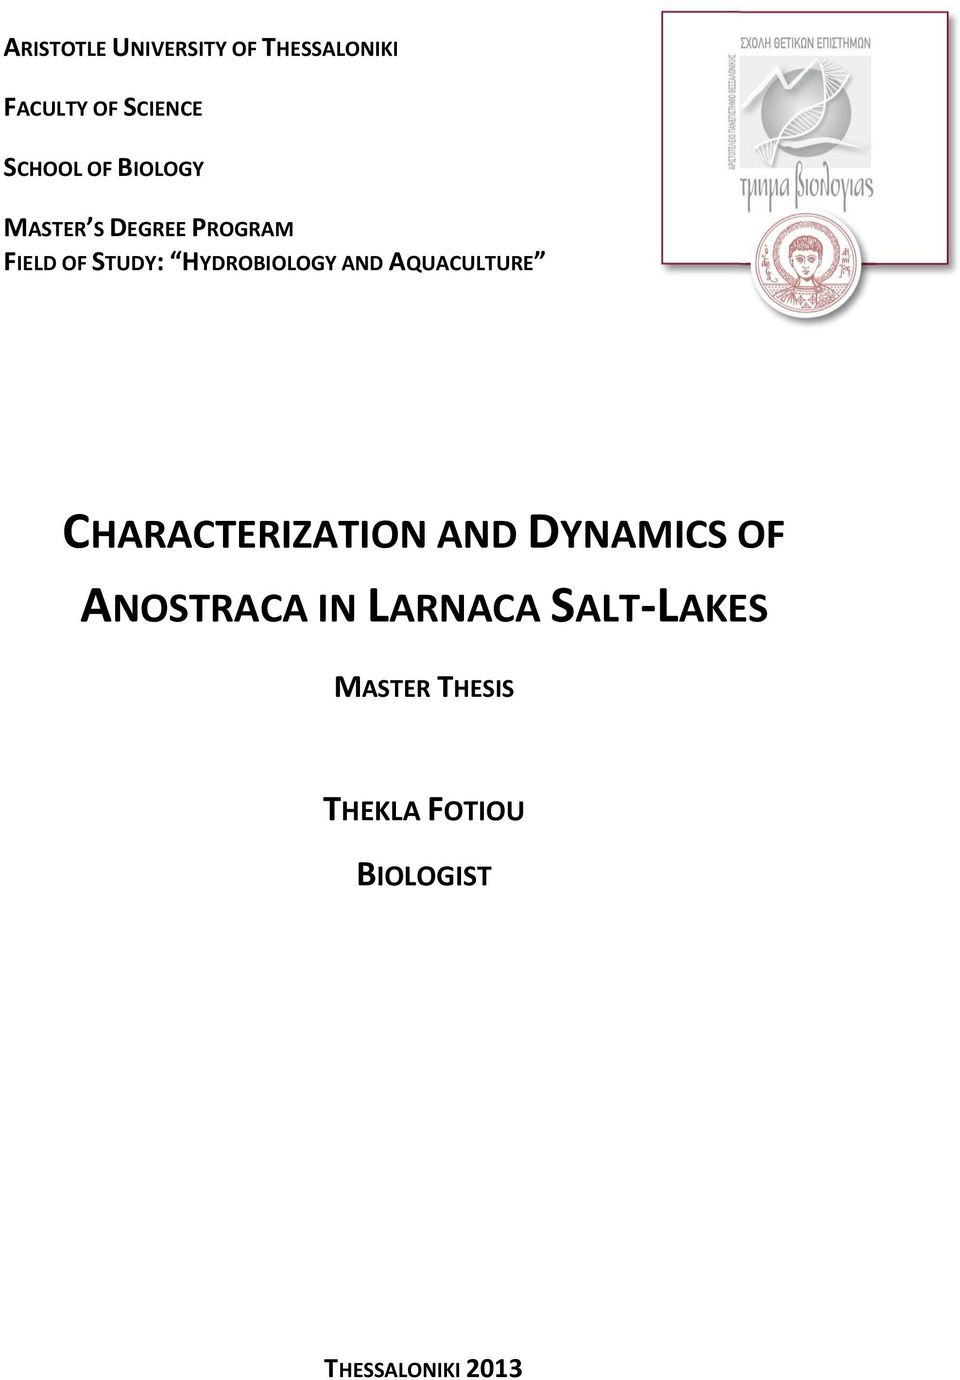 AQUACULTURE CHARACTERIZATION AND DYNAMICS OF ANOSTRACA IN LARNACA